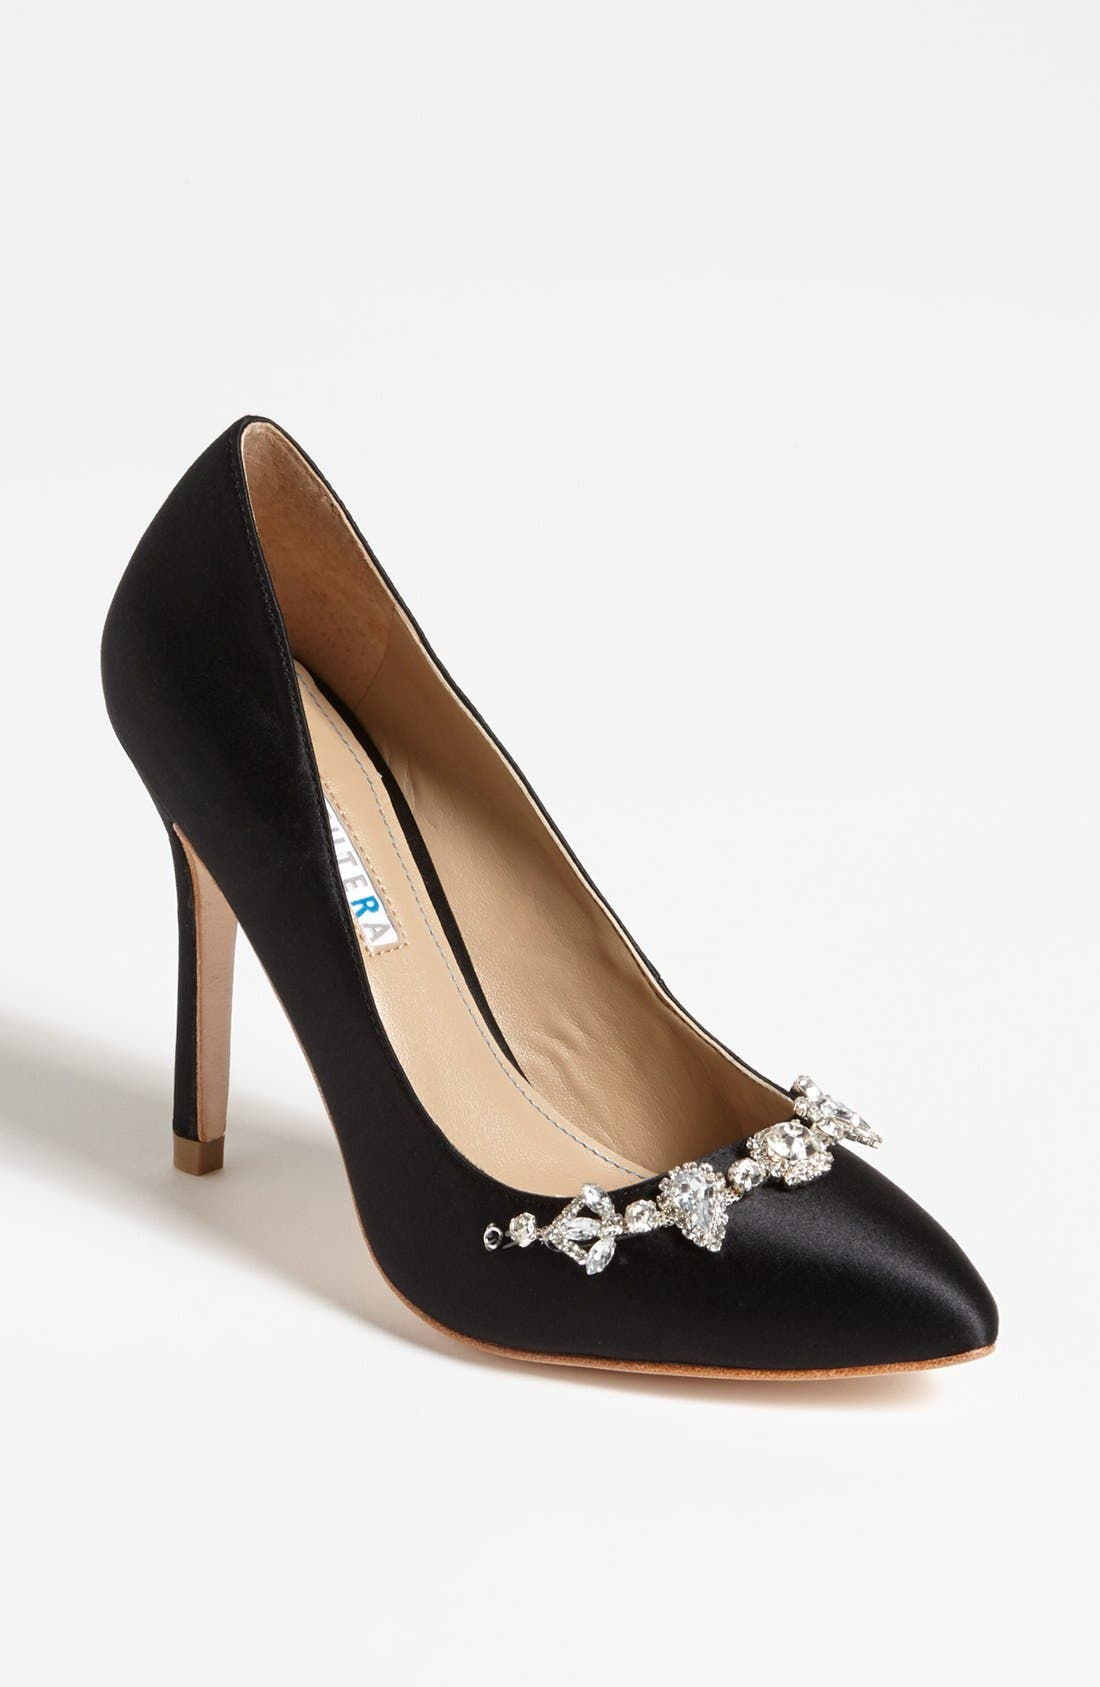 Main Image - David Tutera 'Tiara' Pump